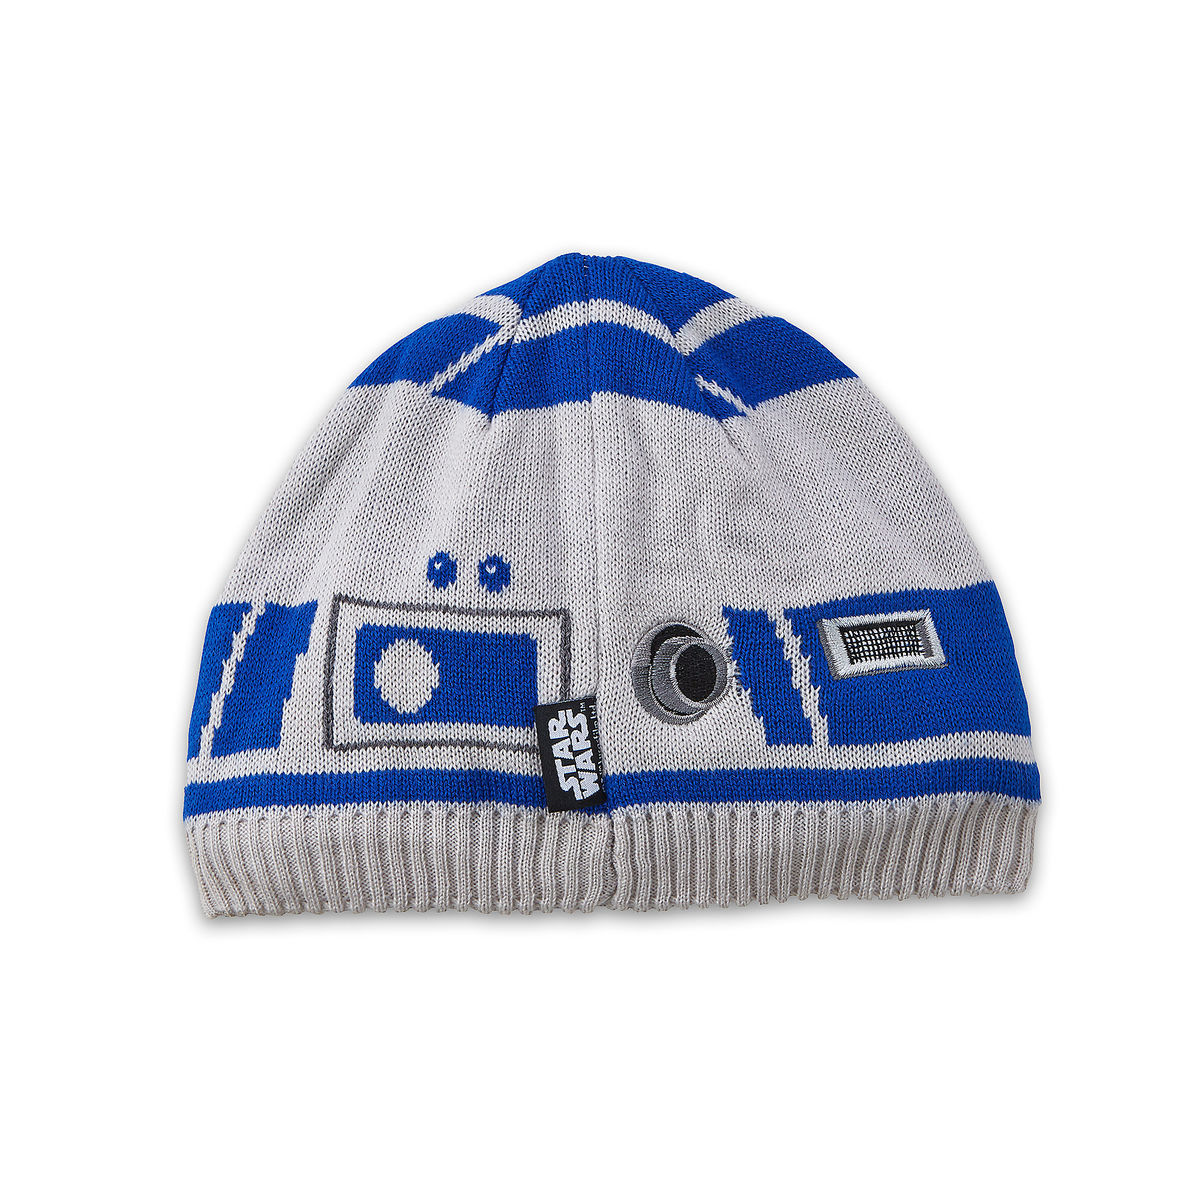 a44f7d7fd5f R2-D2 Light-Up Beanie Hat for Kids - Star Wars